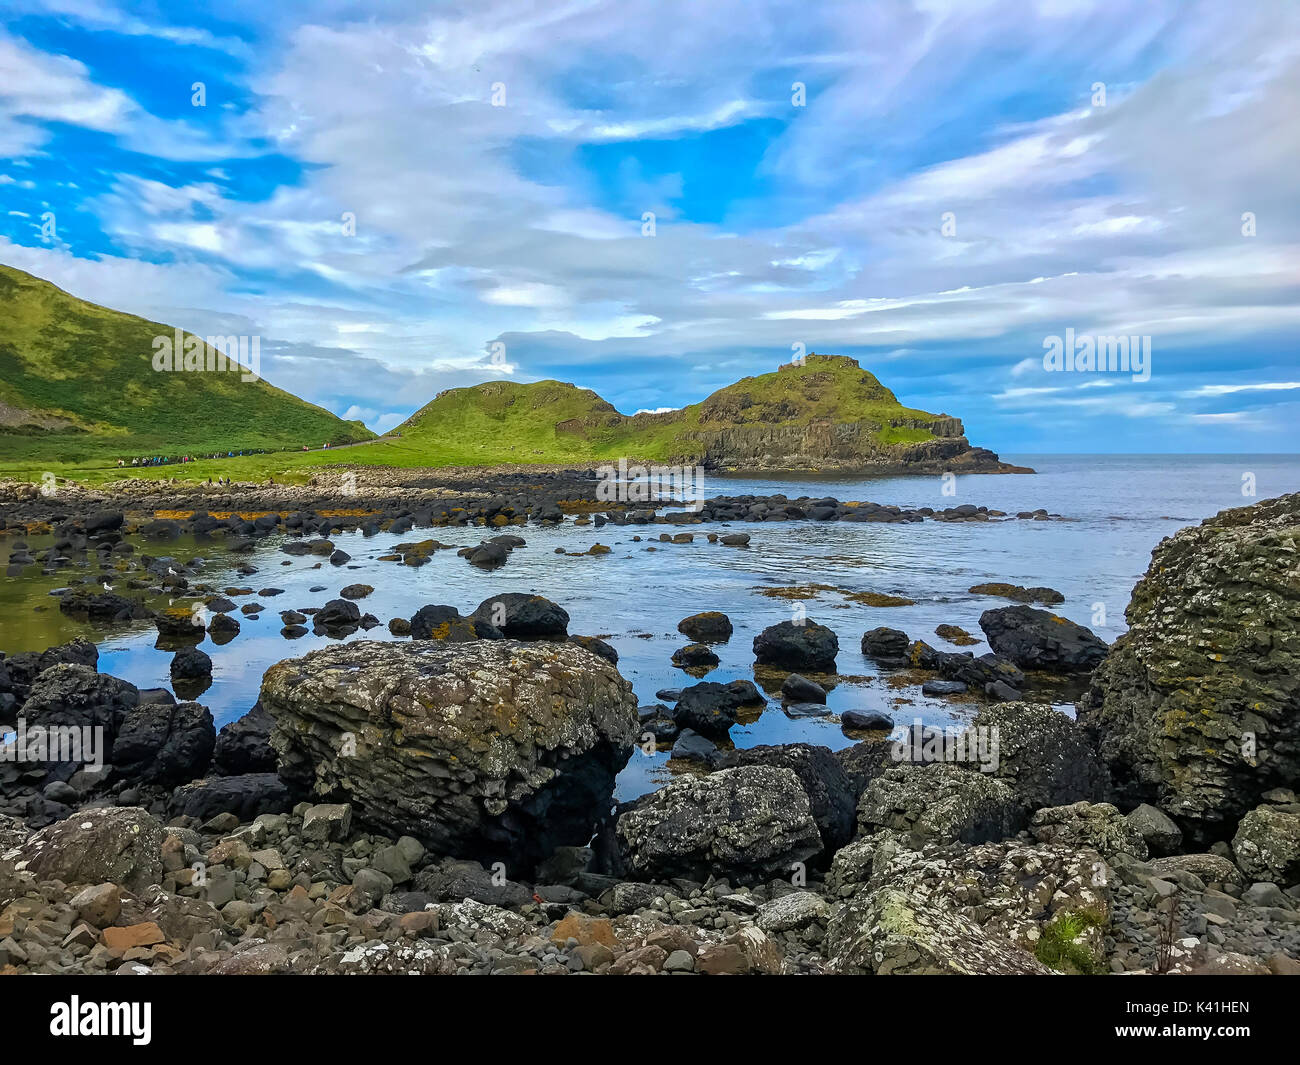 Beautiful scenery at Giants Causeway in Northern Ireland in the county of Antrim in the United Kingdom, Europe - Stock Image